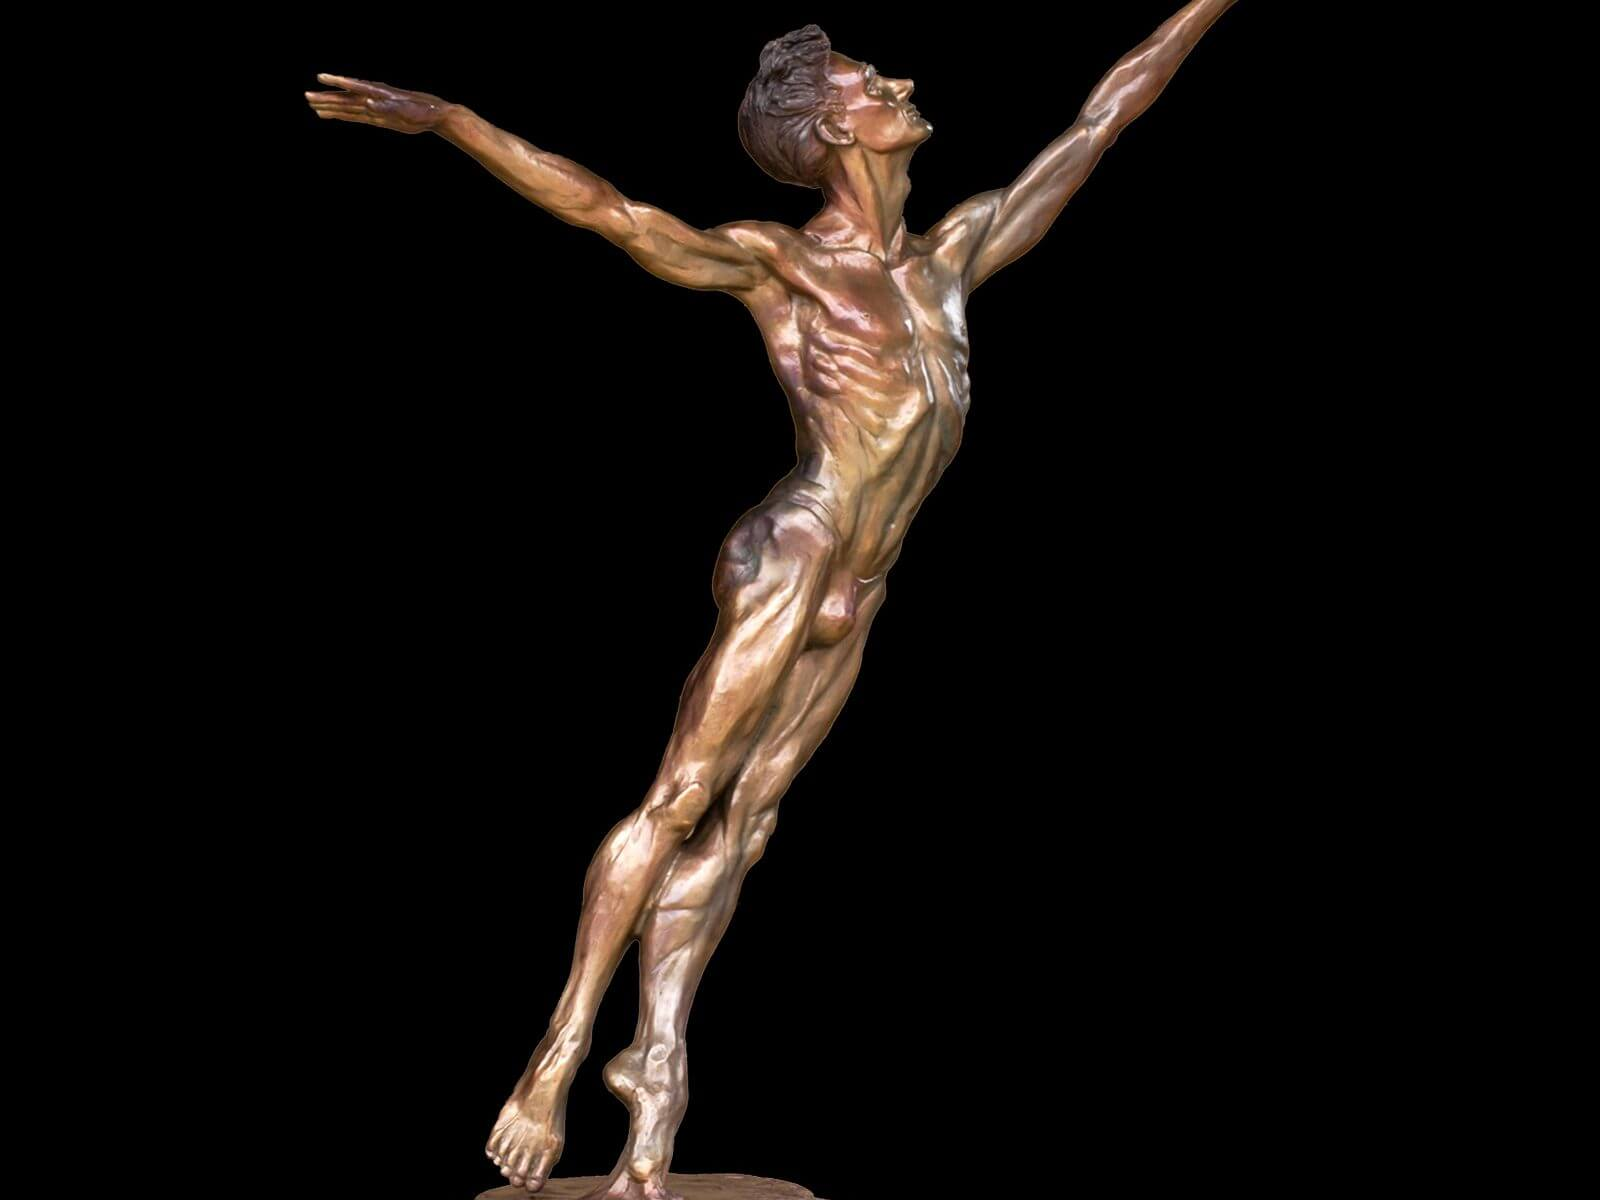 Destiny a medium size male bronze dance figurative sculpture by Andrew DeVries